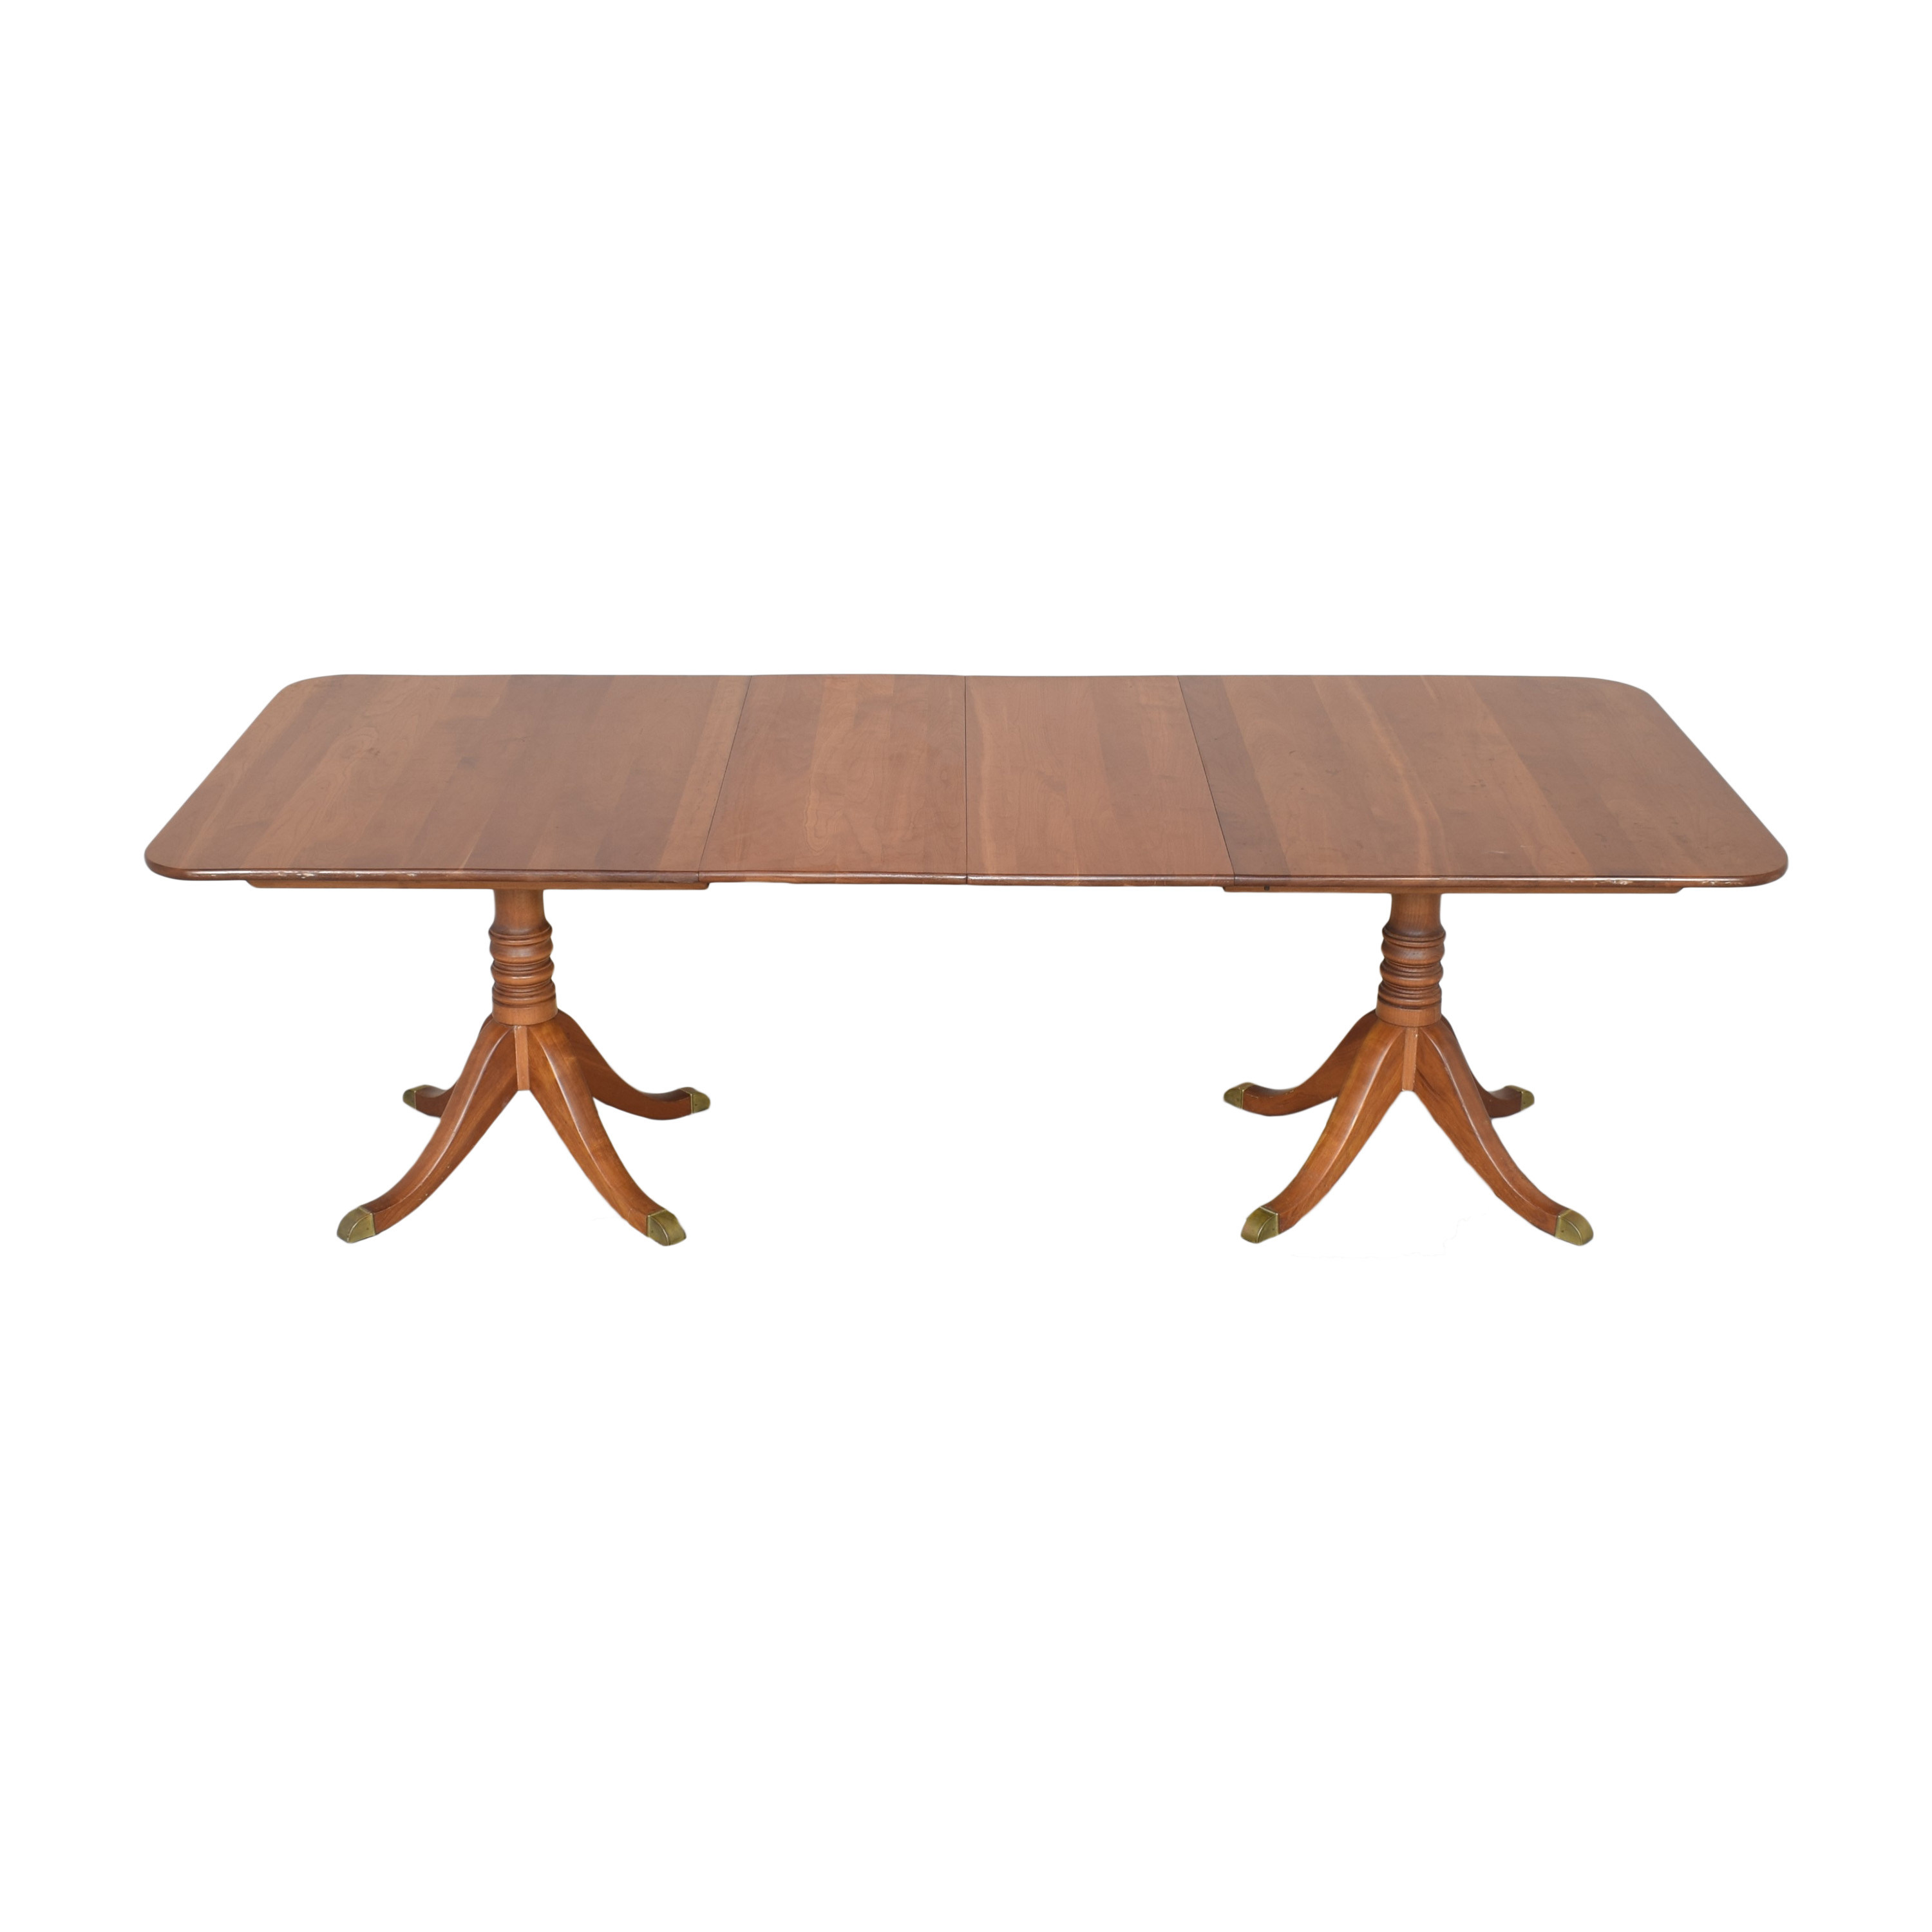 buy Stickley Furniture Stickley Furniture Double Pedestal Extendable Dining Table online